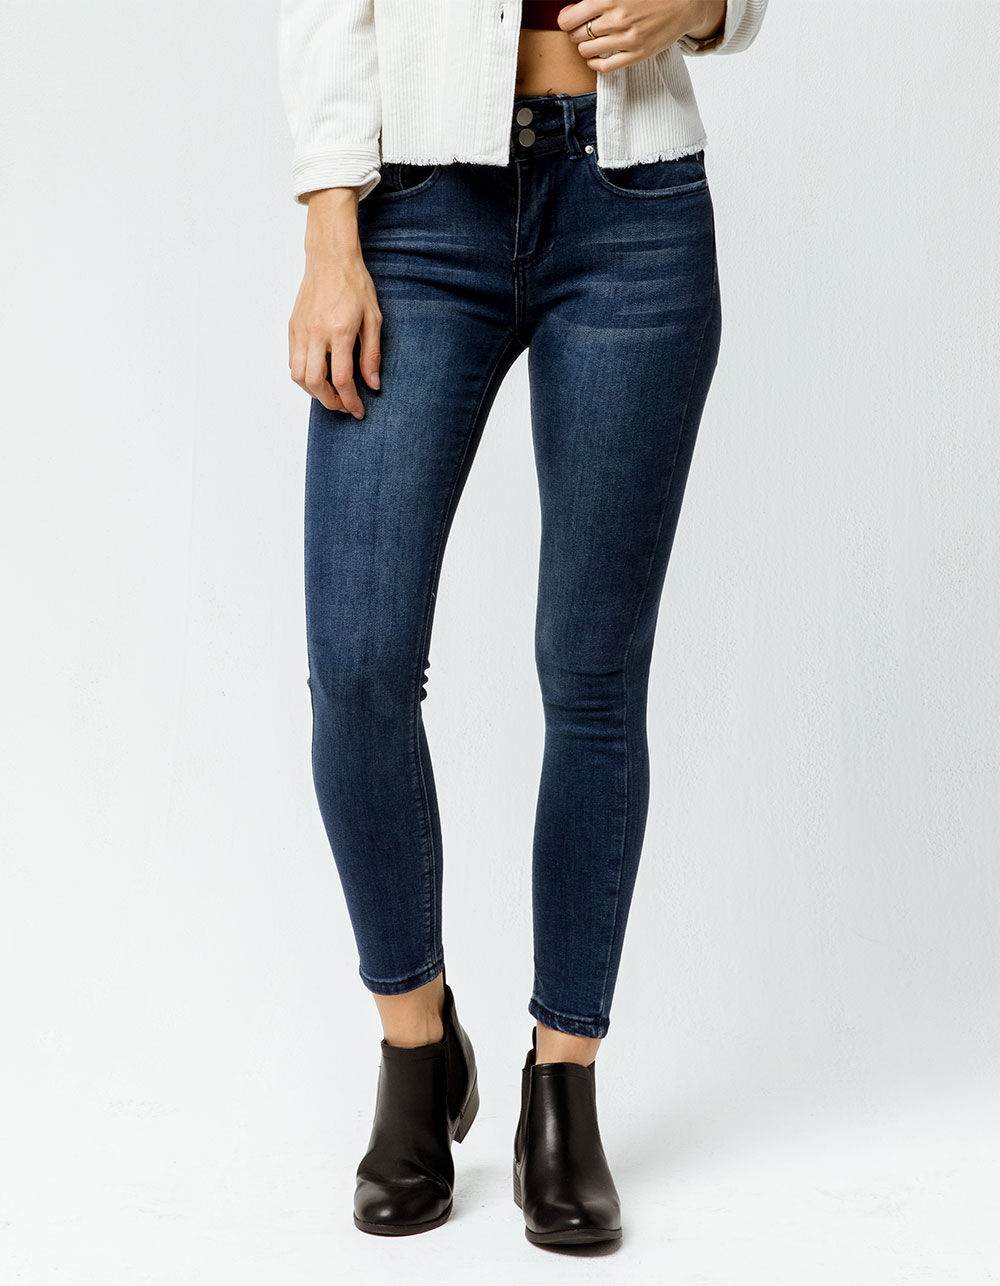 IVY & MAIN Dual Button Skinny Jeans